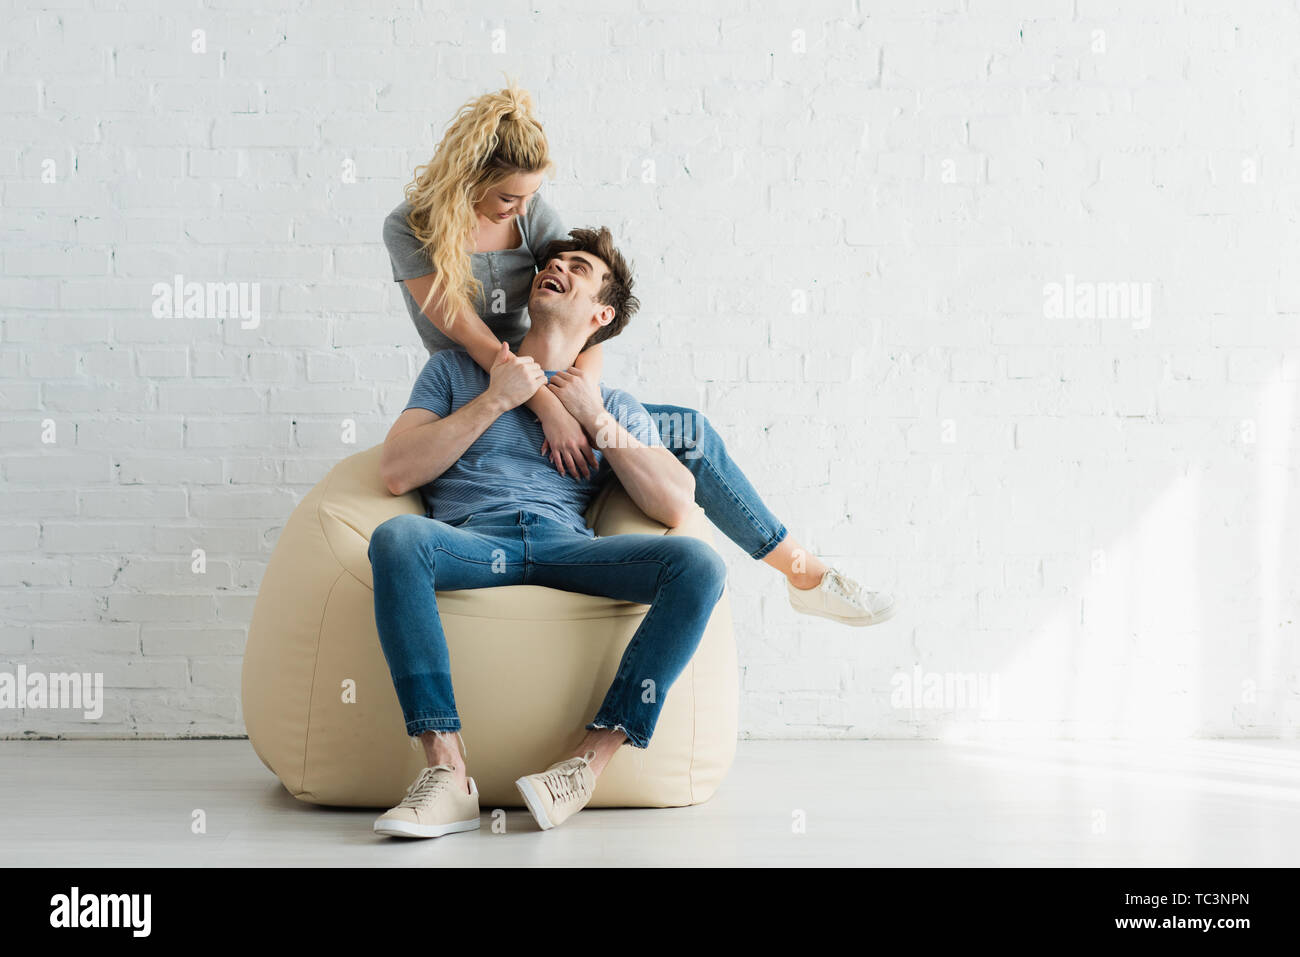 cheerful blonde girl hugging happy man sitting on beige bean bag chair at home - Stock Image